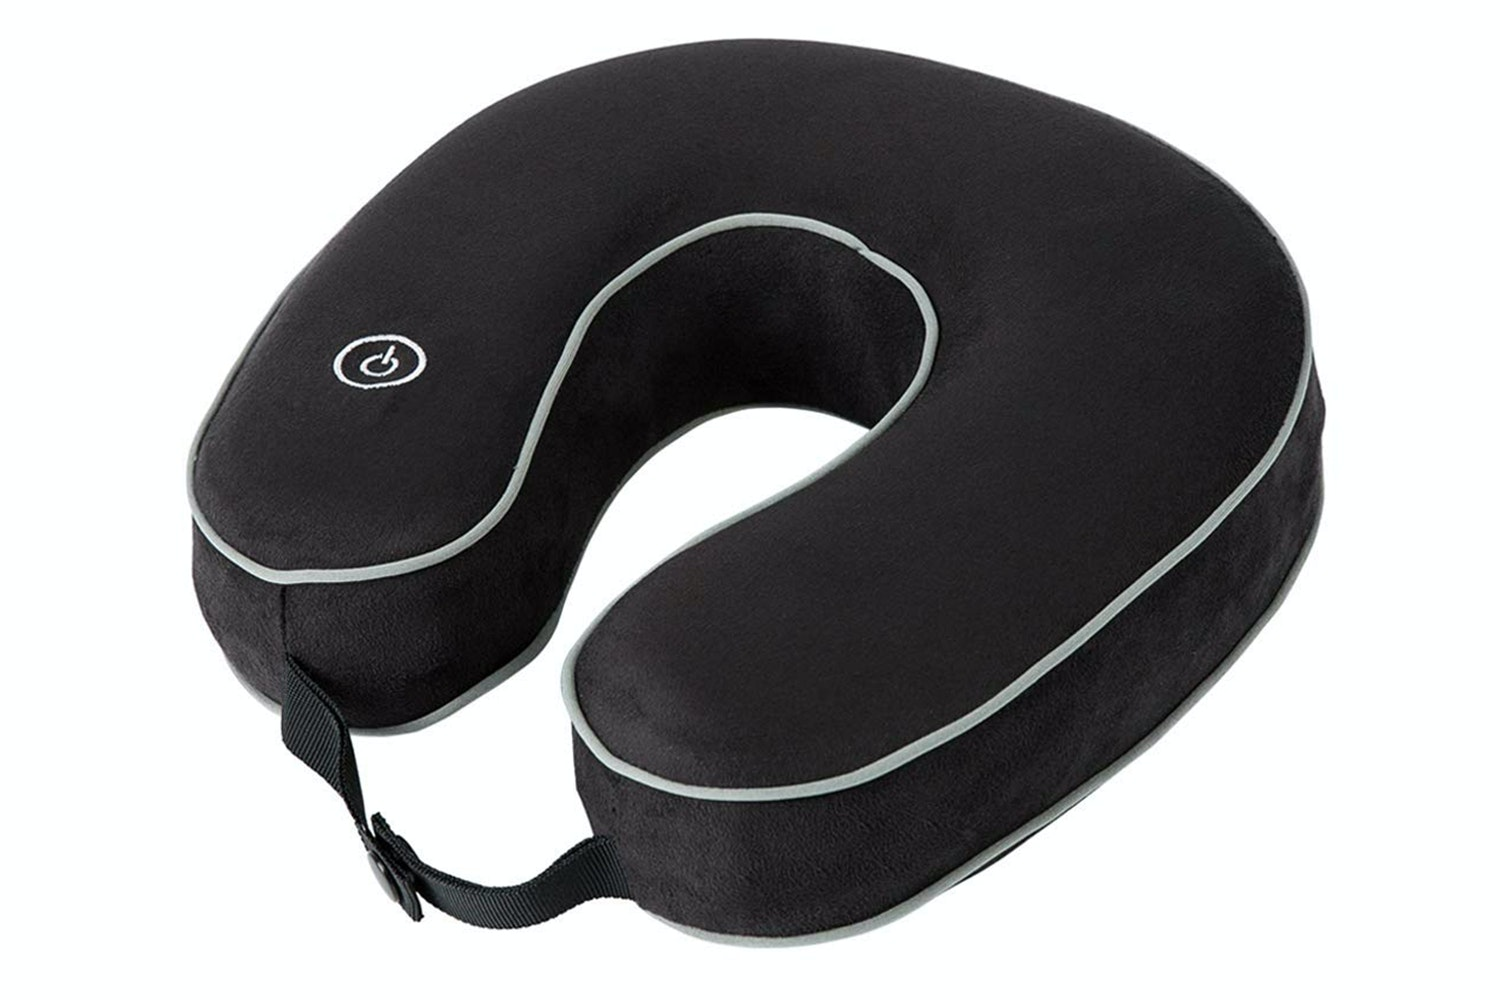 Homedics Vibration Memory Foam Travel Massage Pillow